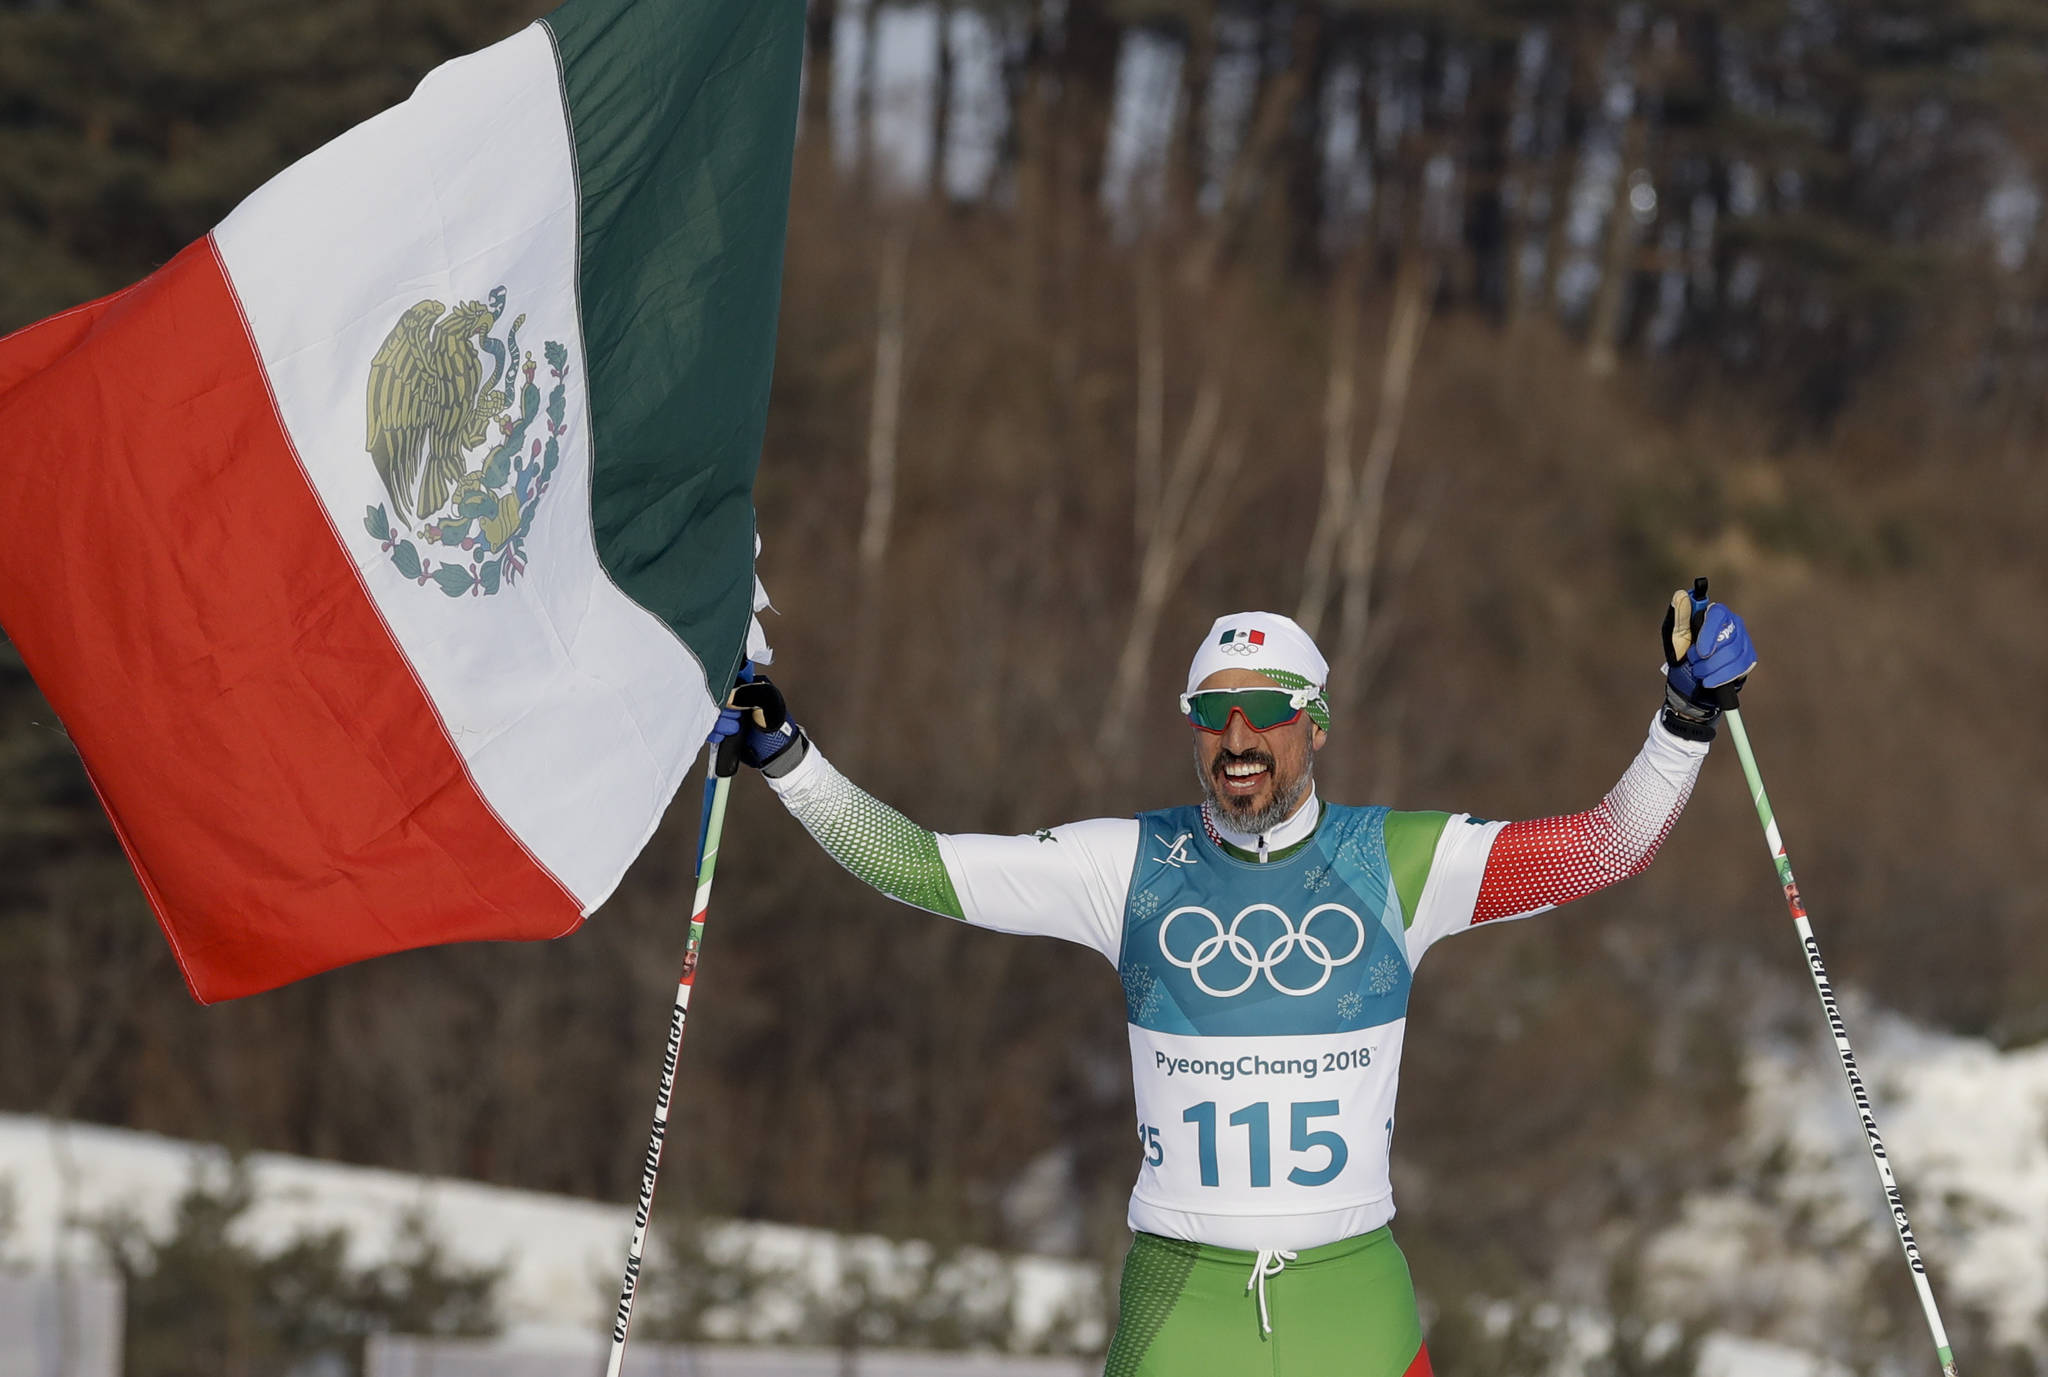 German Madrazo, of Mexico, holds up his flag after finishing last in the men's 15km freestyle cross-country skiing competition at the 2018 Winter Olympics in Pyeongchang, South Korea, Friday. (AP Photo/Kirsty Wigglesworth)